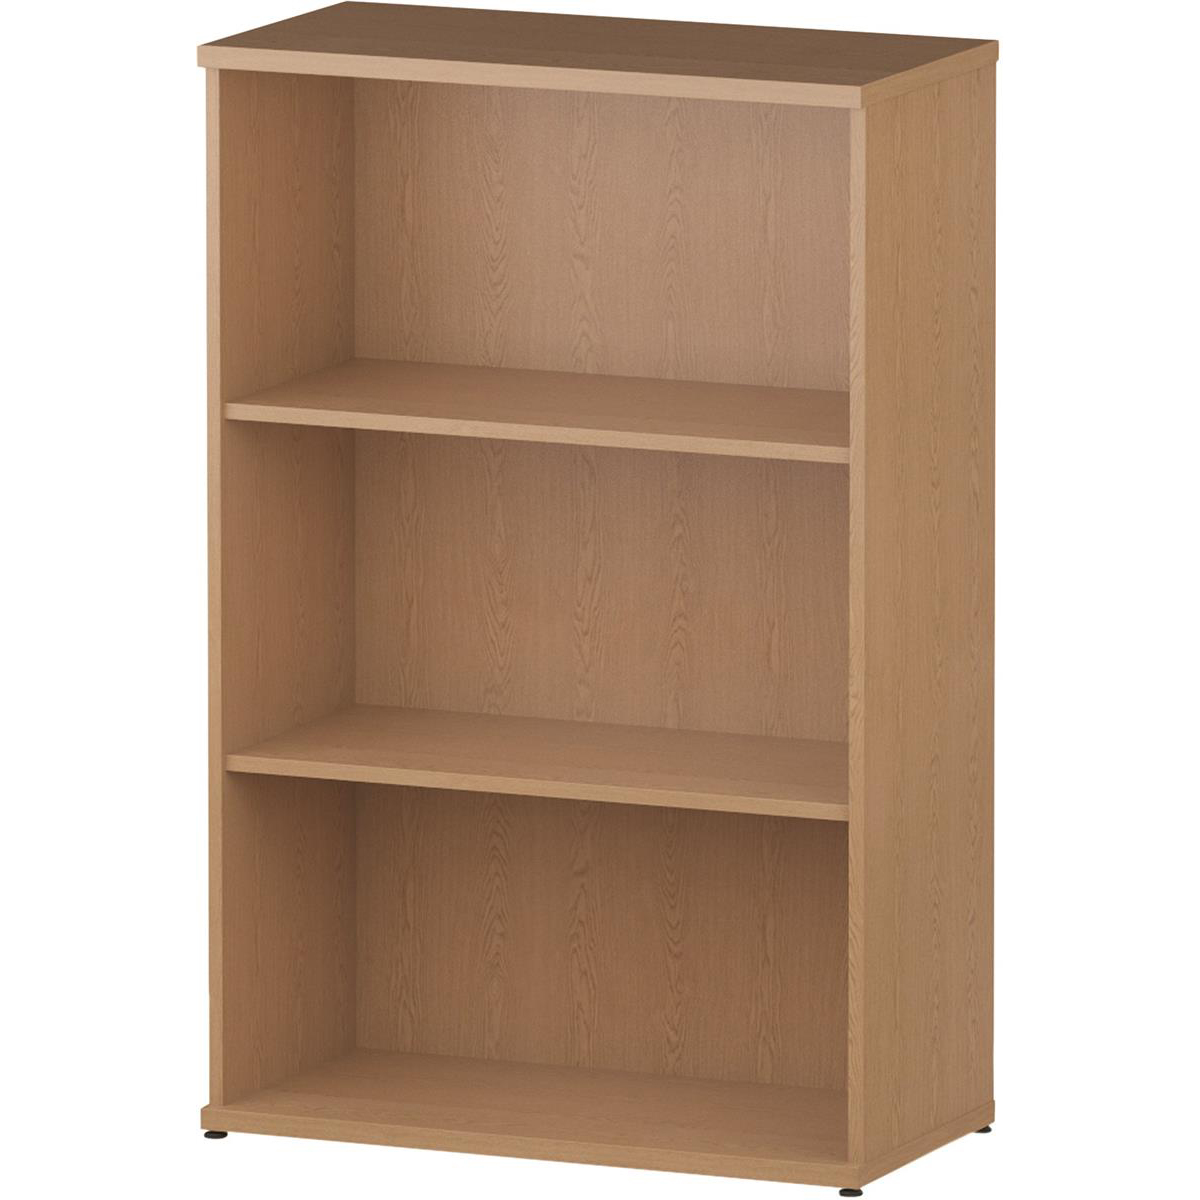 Bookcases Trexus Office Medium Bookcase 800x400x1200mm 2 Shelves Oak Ref I000758